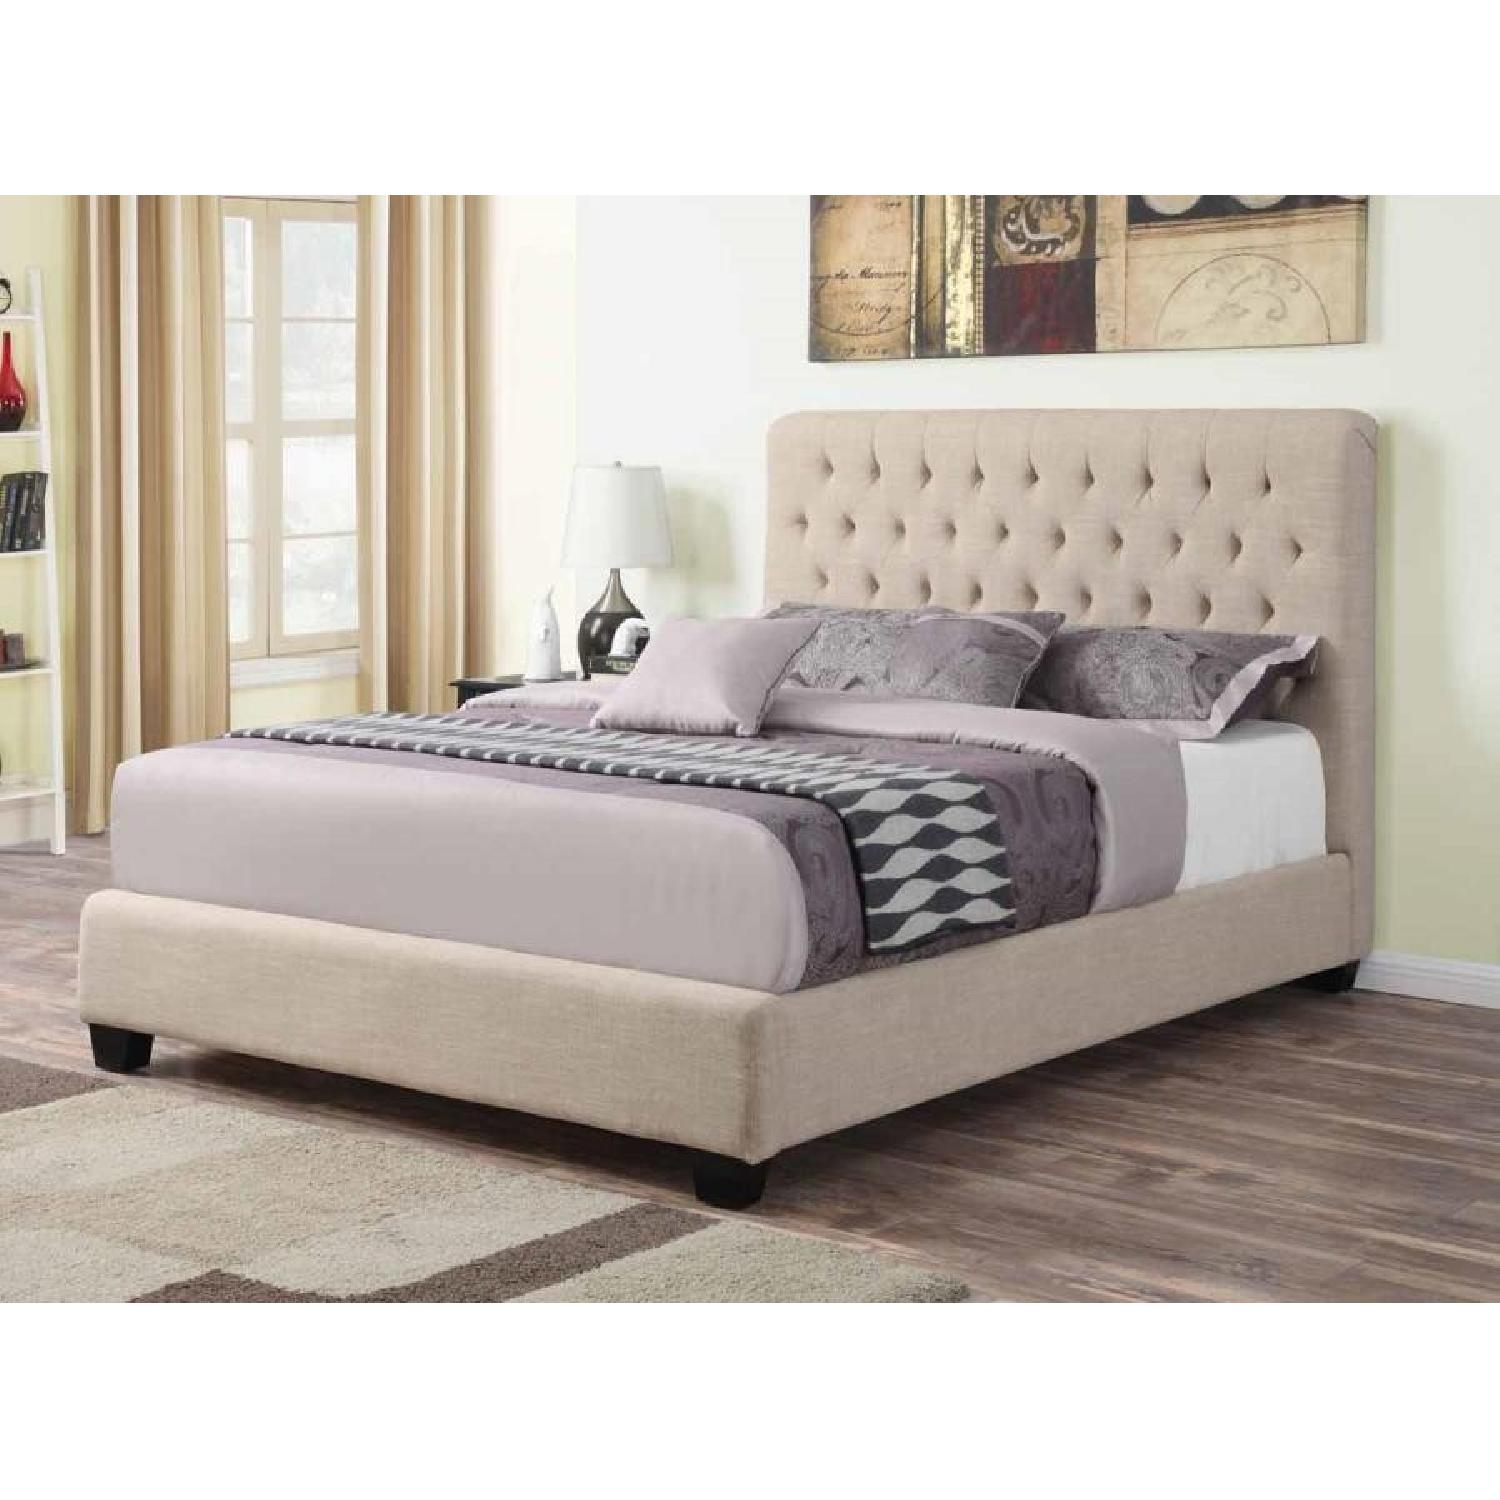 Modern Queen Fabric Upholstered Bed w/ Tufted Headboard in Oak Meal Fabric - image-1